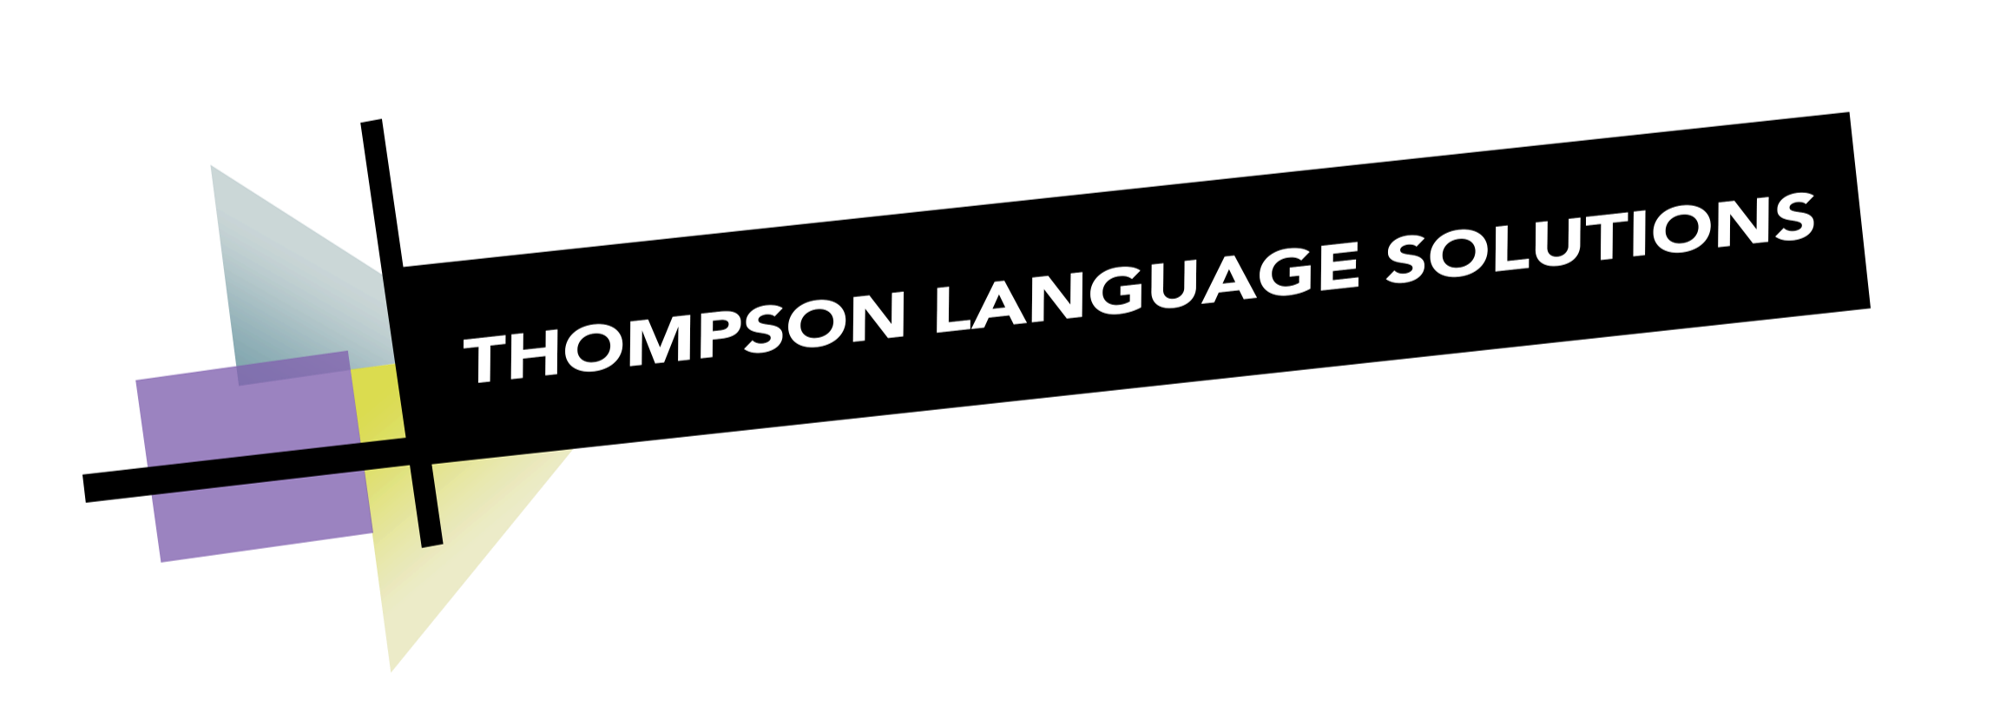 Thompson Language Solutions